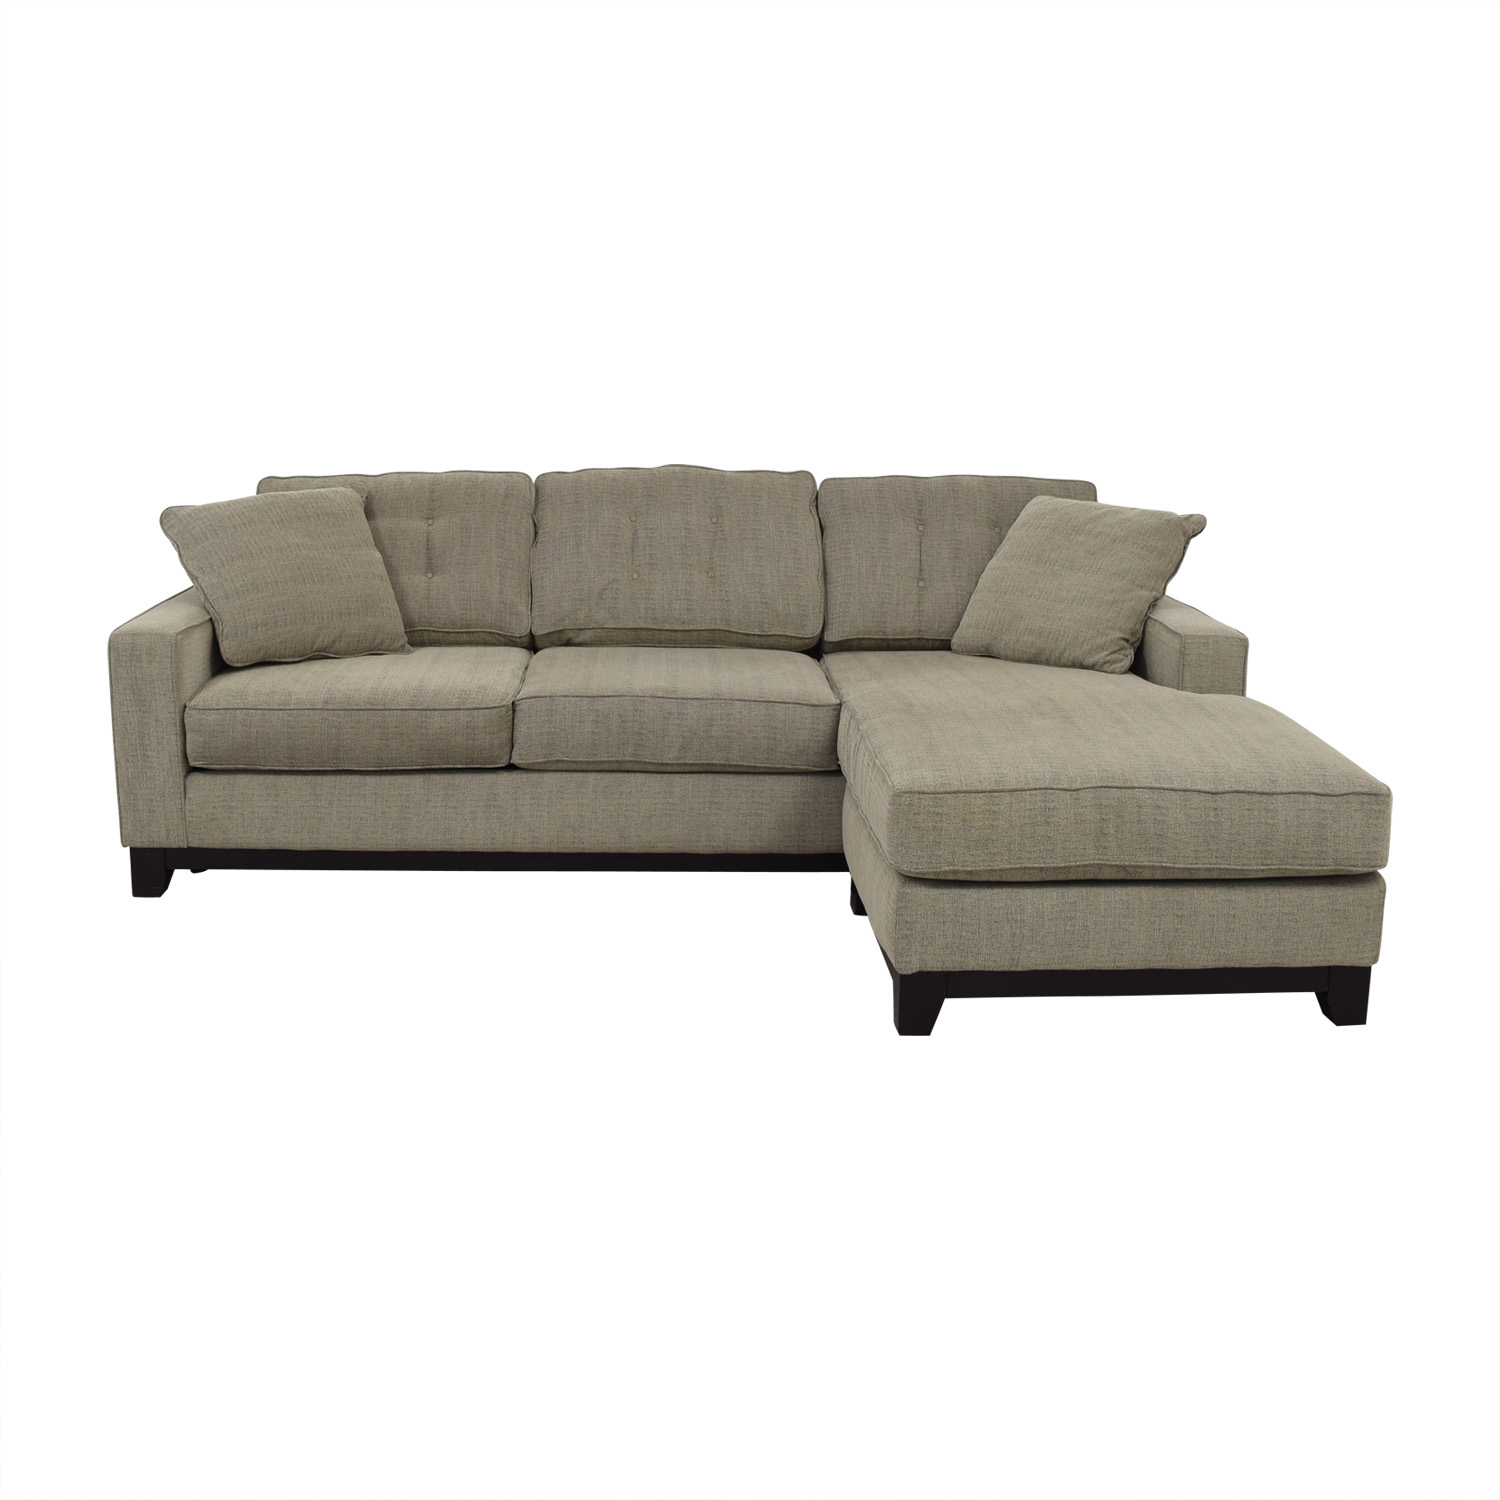 Macy's Gray Chaise Sectional sale